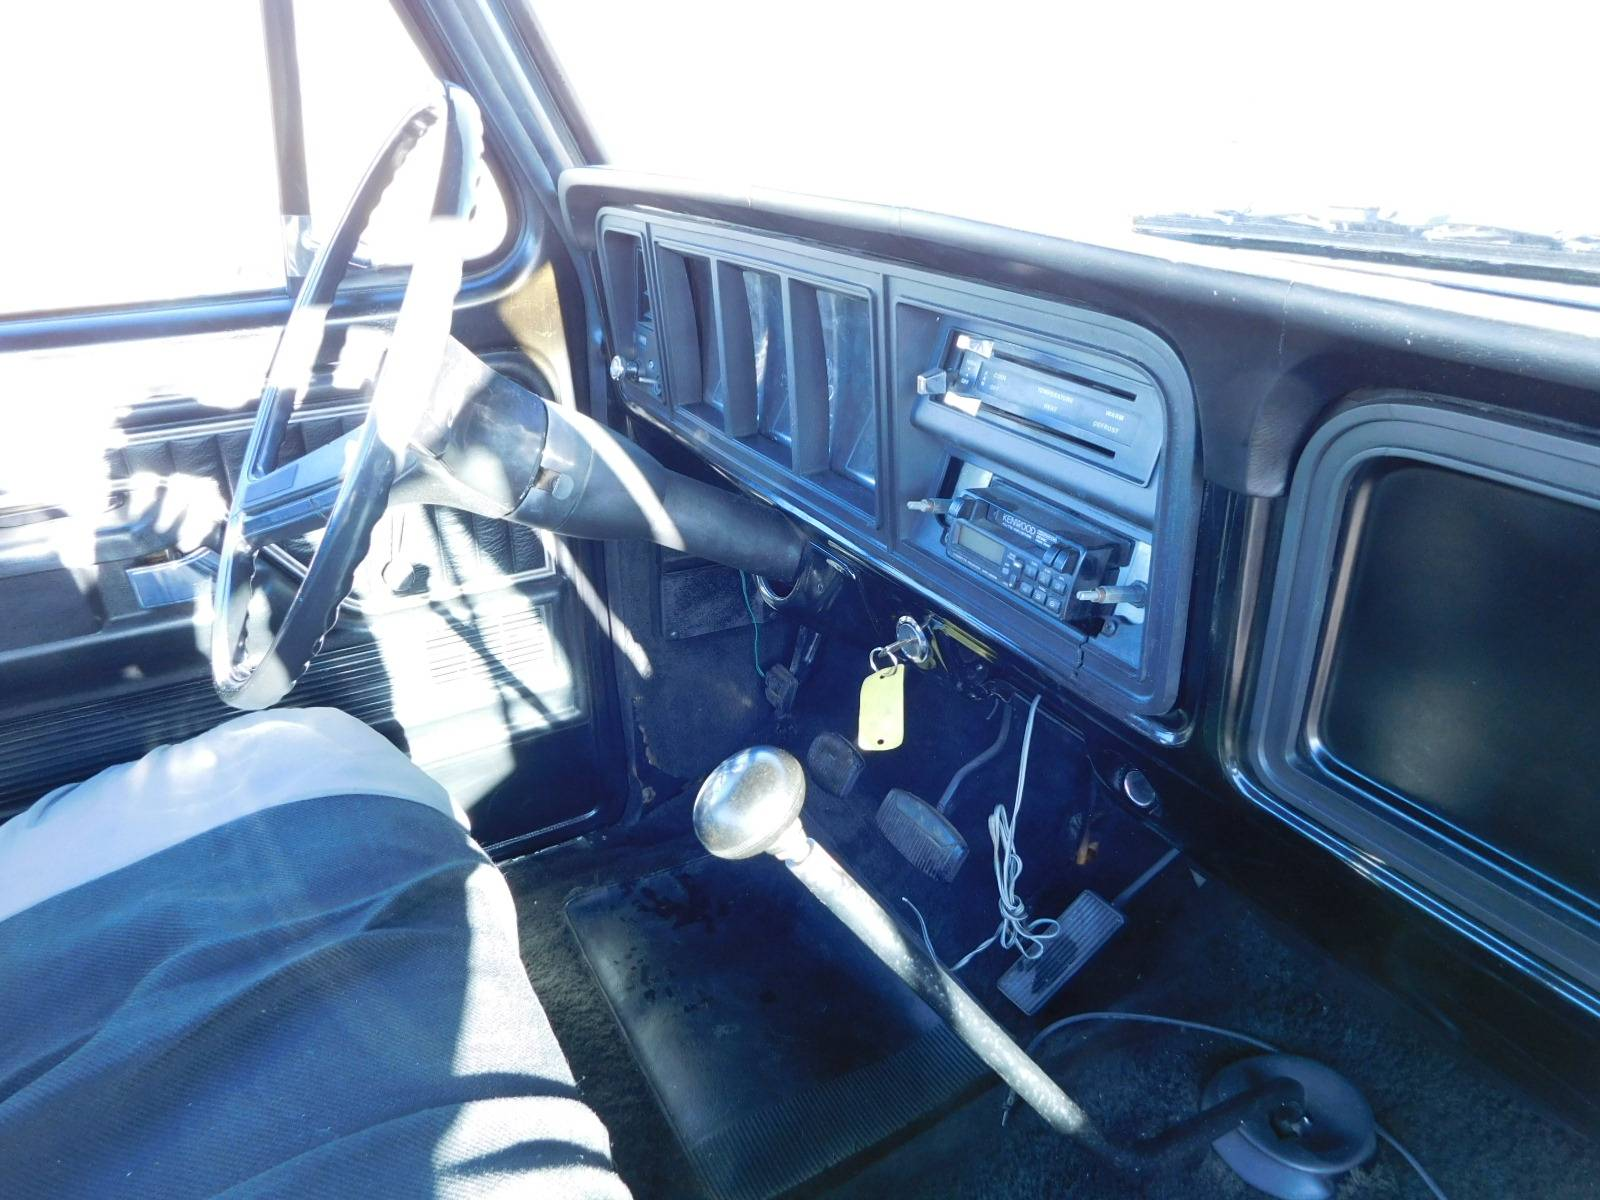 1977 Ford F-100 Ranger in Loveland, Colorado - Photo 10